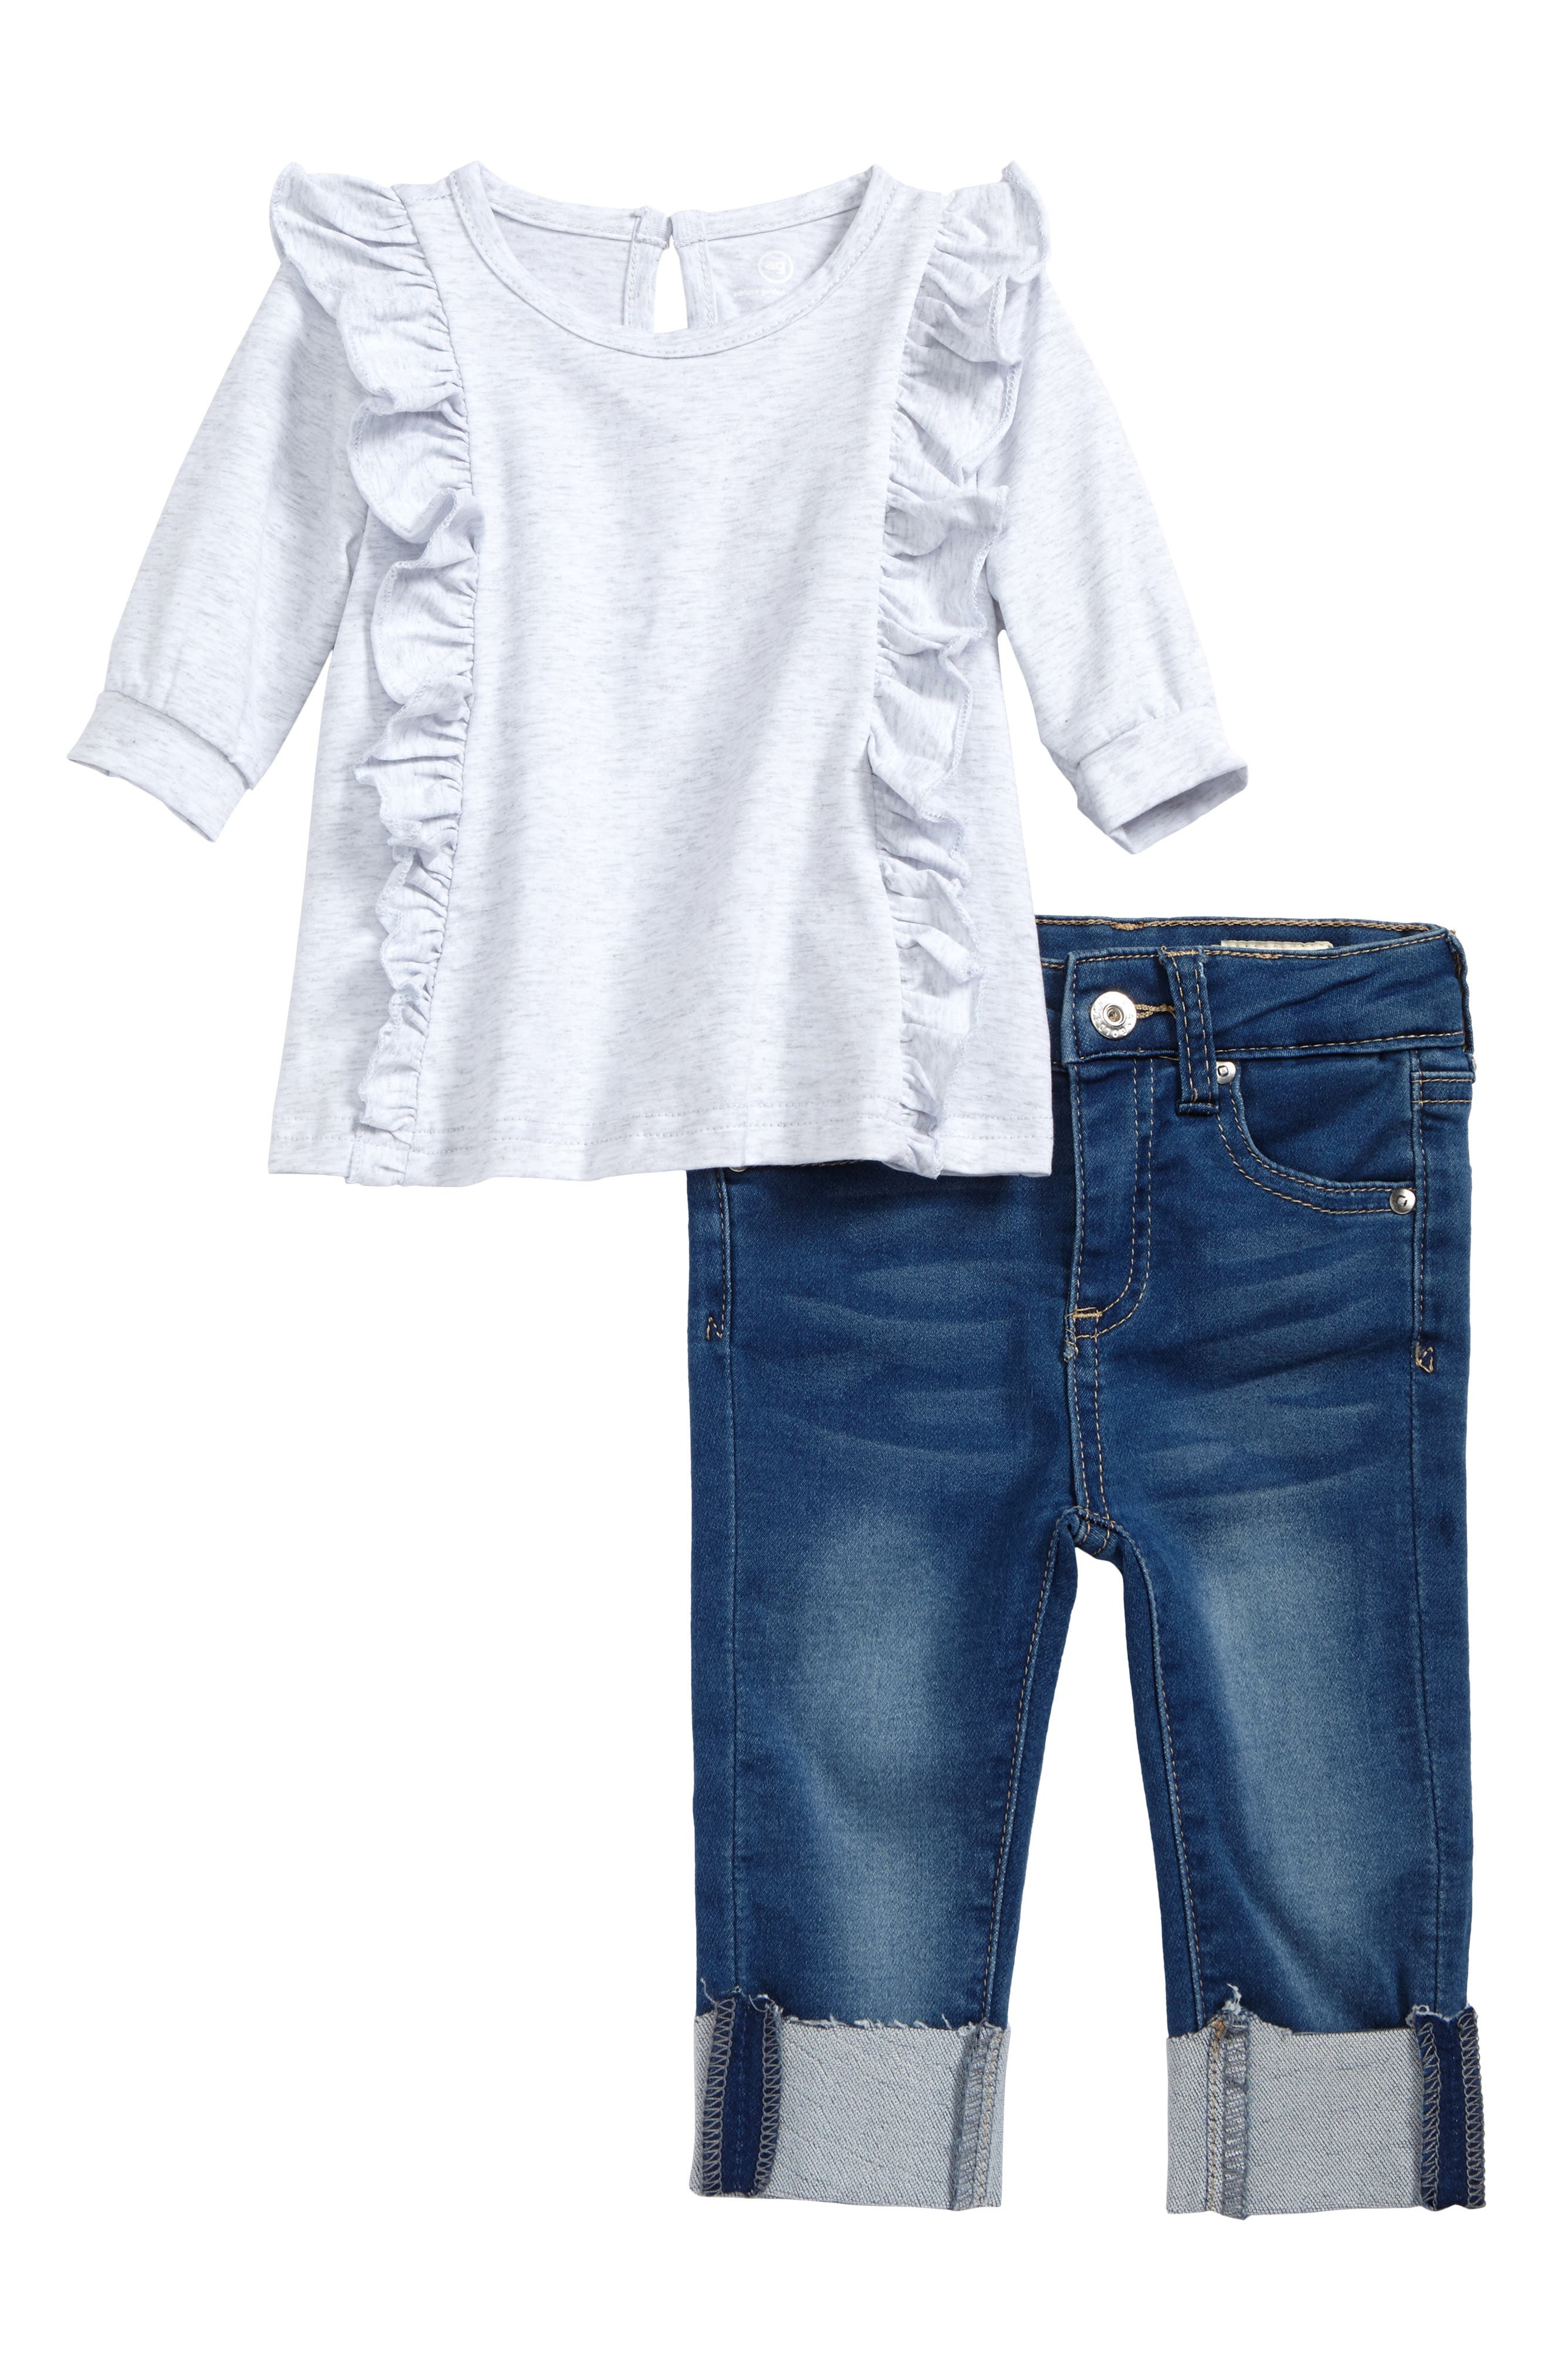 ag adriano goldschmied kids Ruffle Top & Jeans Set (Baby Girls)